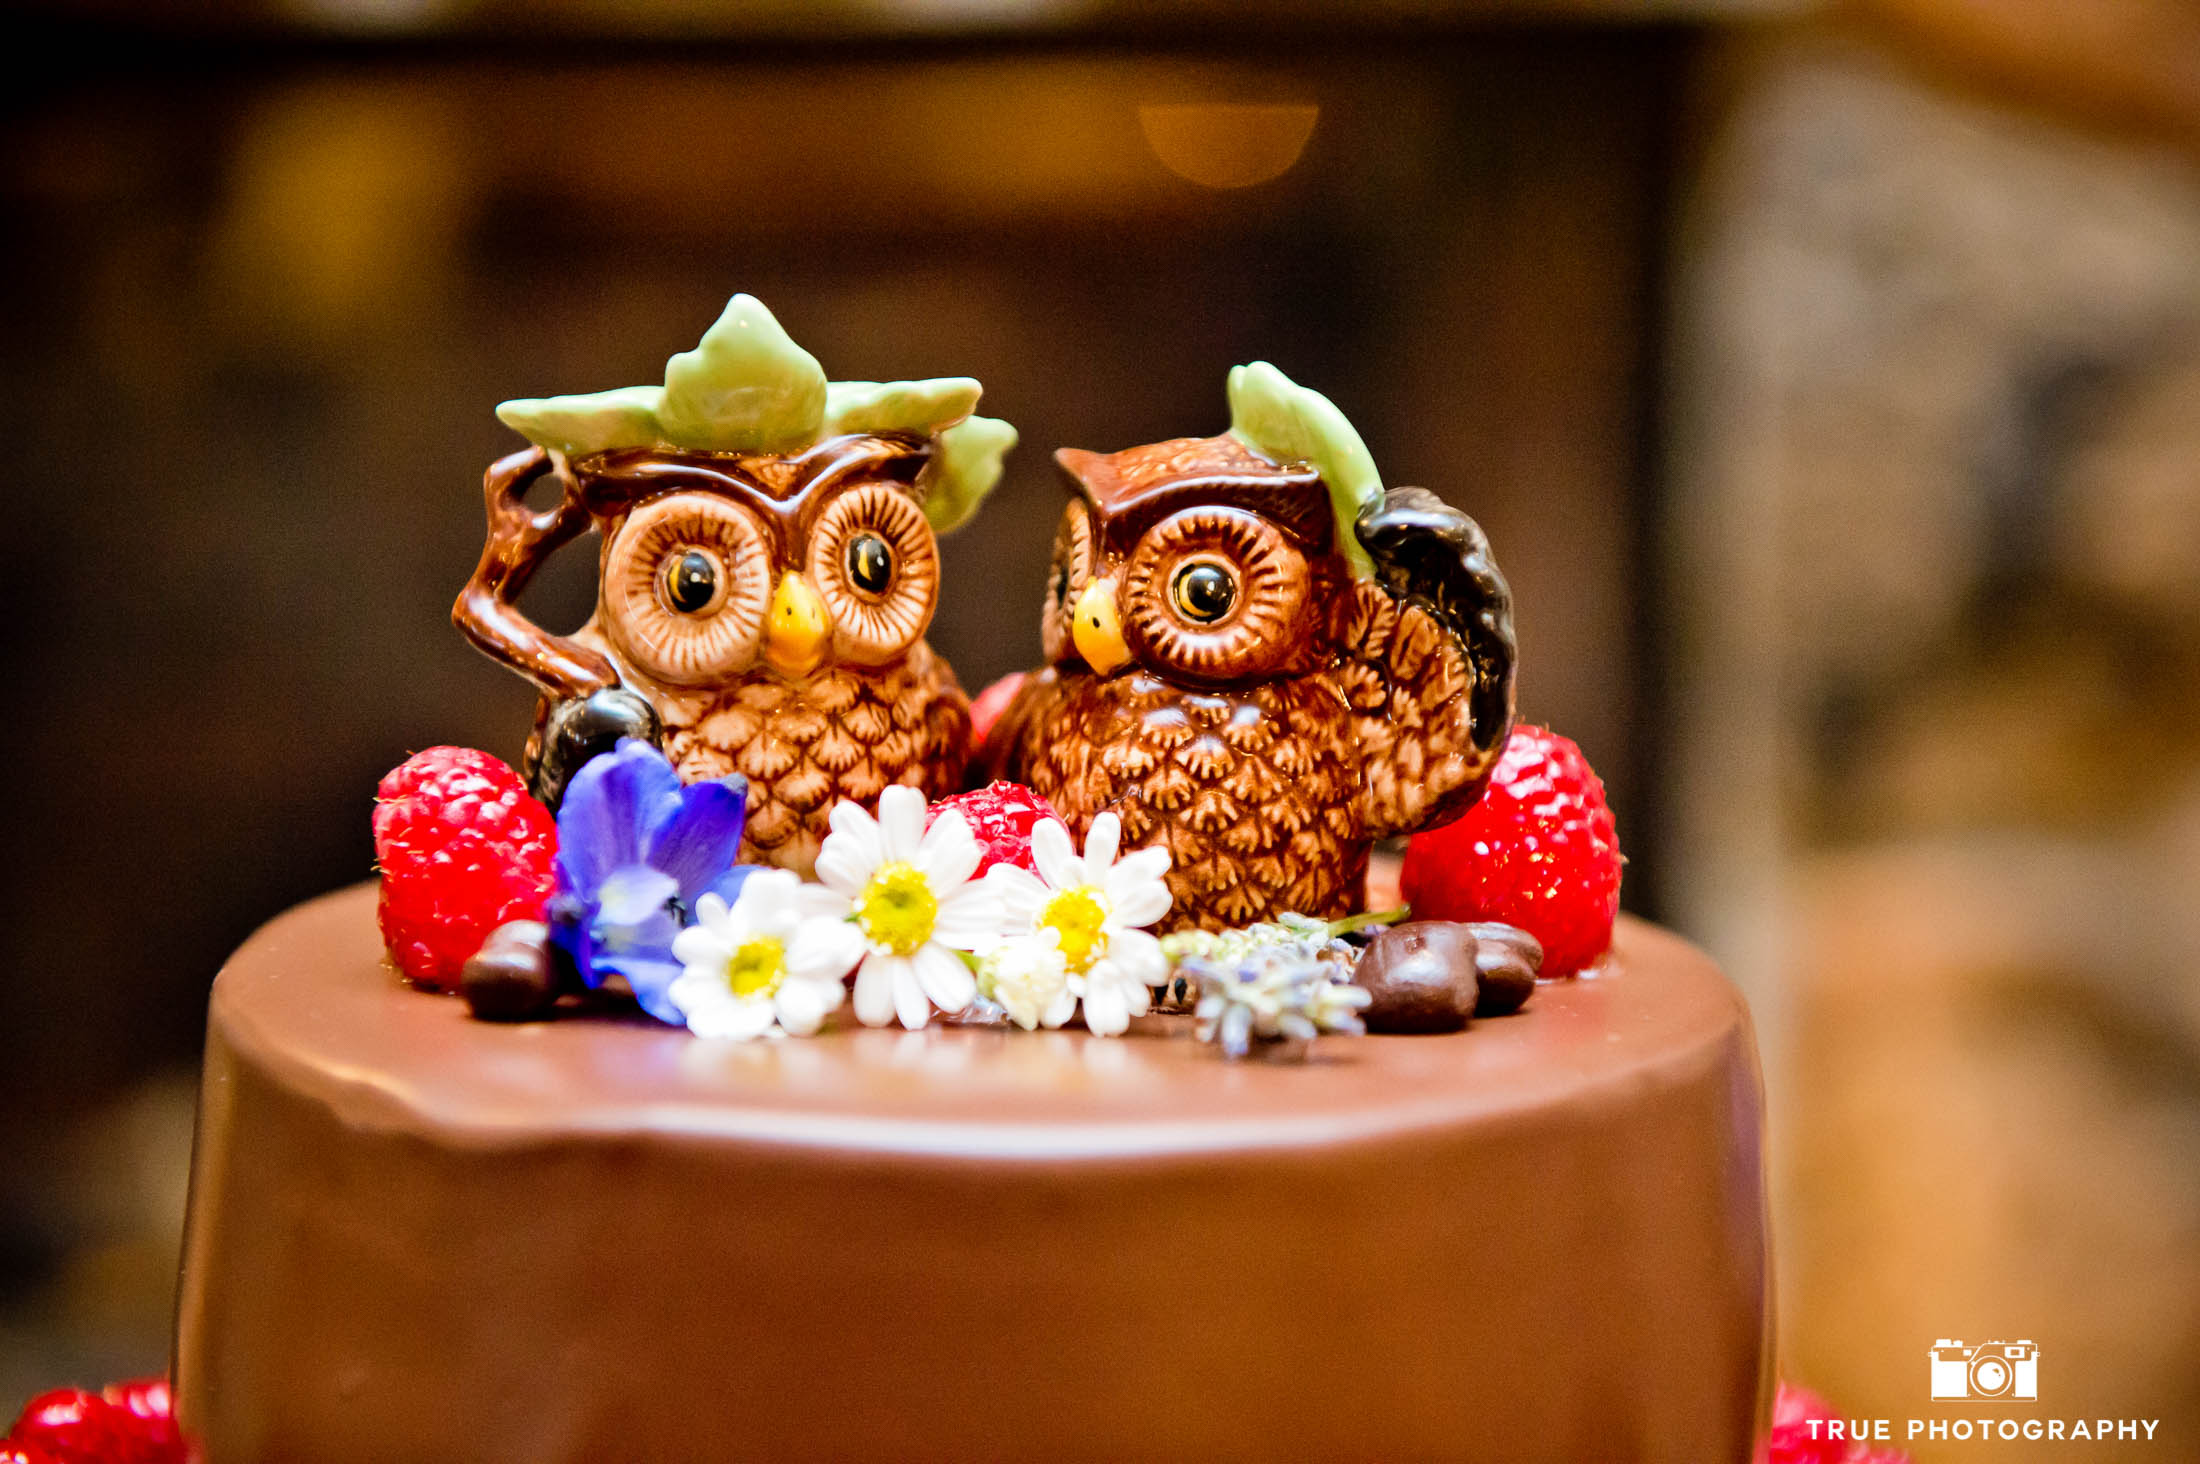 Cute, ceramic owl wedding cake topper of wedding couple